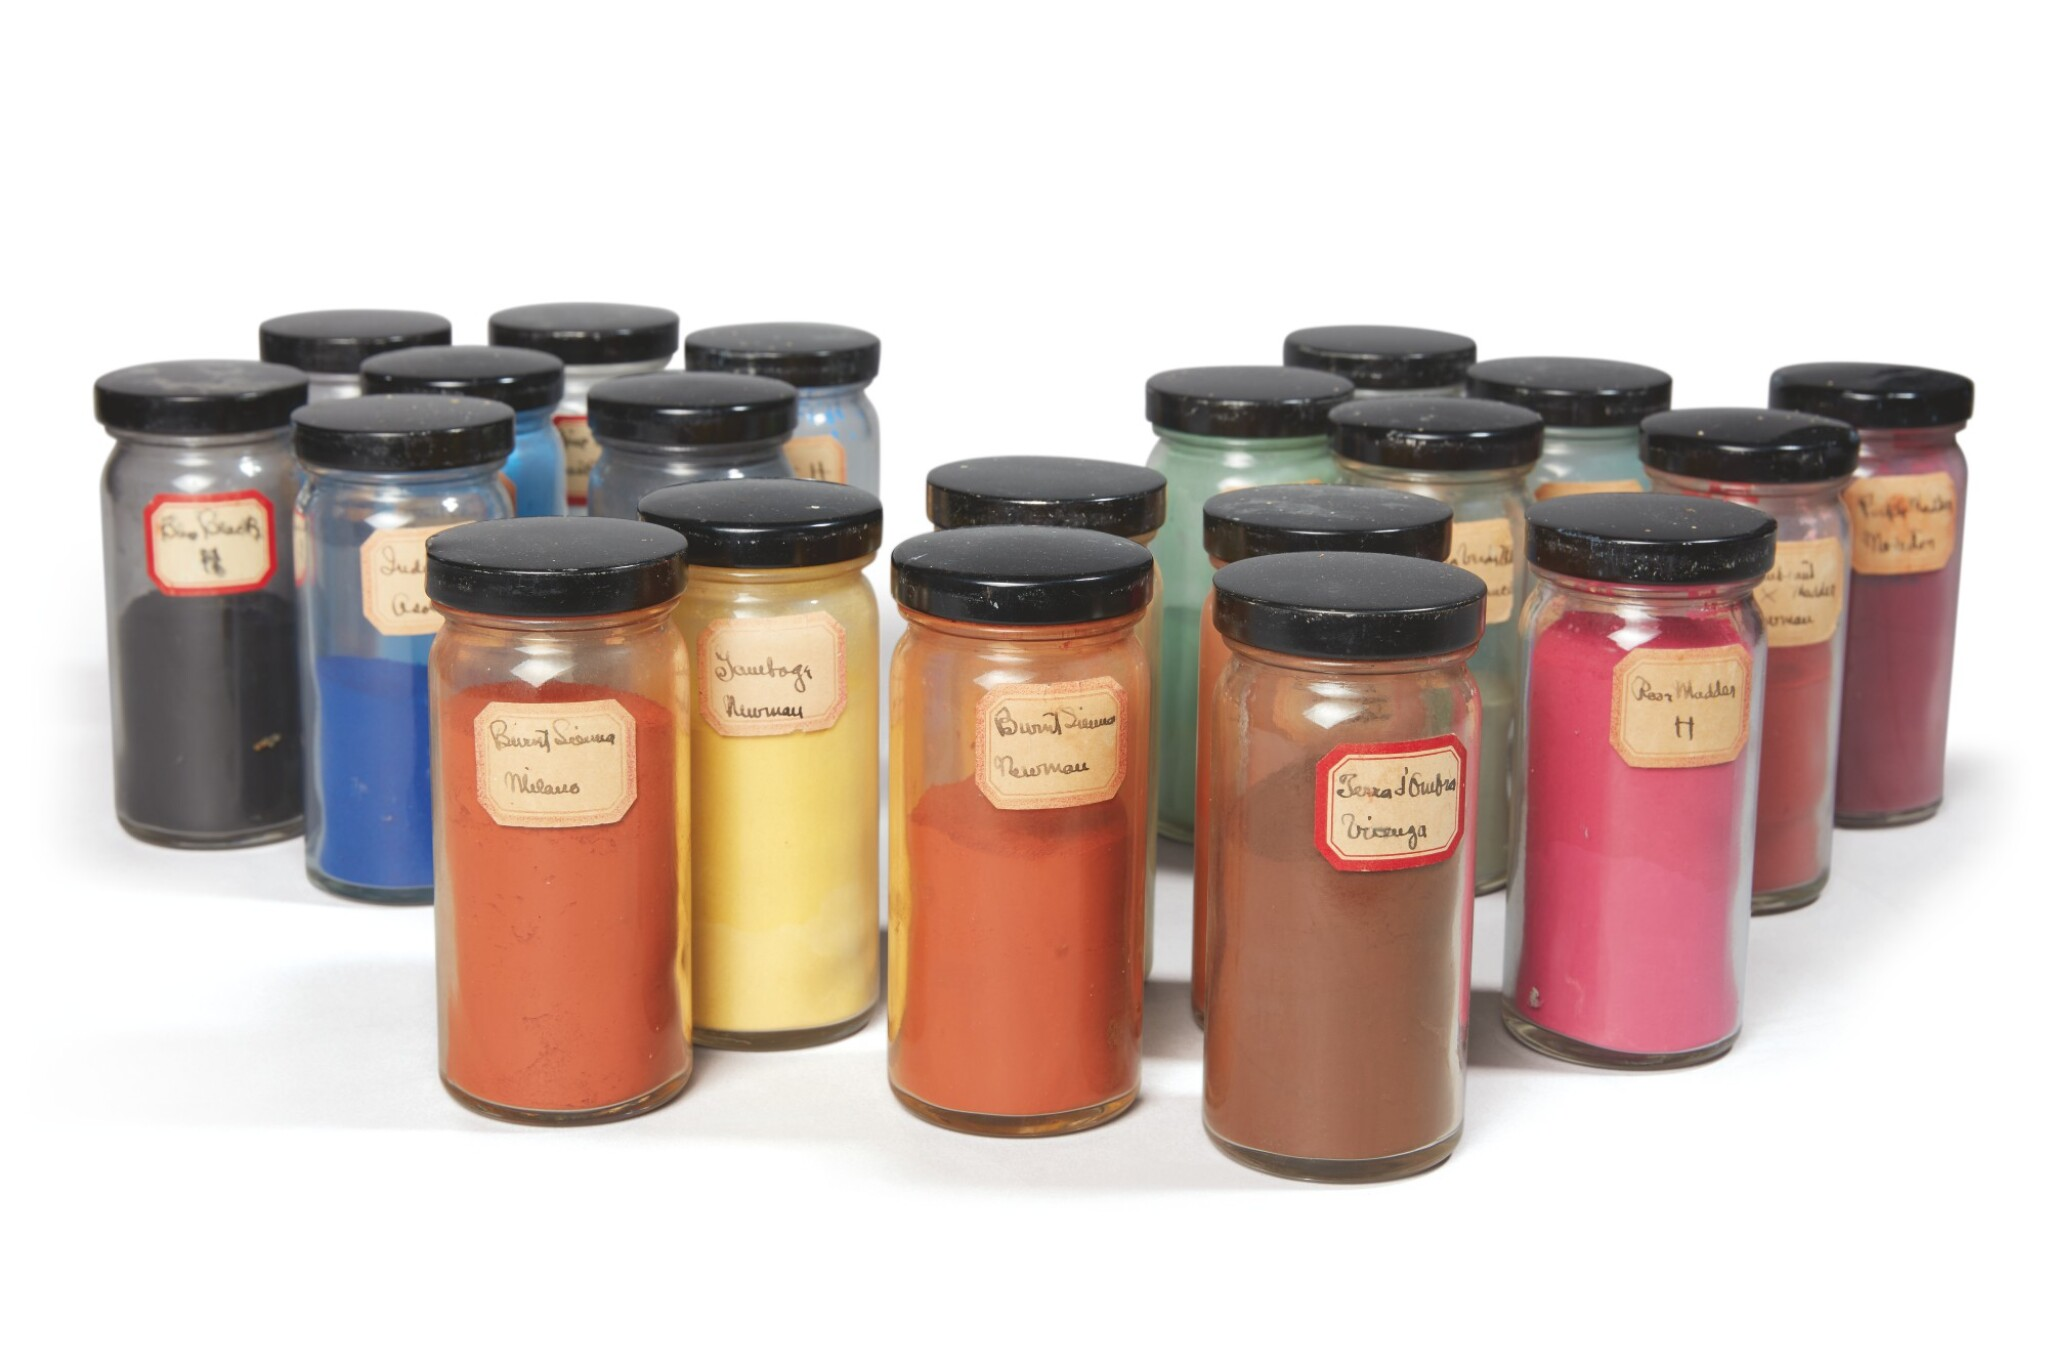 GEORGIA O'KEEFFE'S PIGMENTS |  A COLLECTION OF 20 JARS LABELLED AND USED BY GEORGIA O'KEEFFE